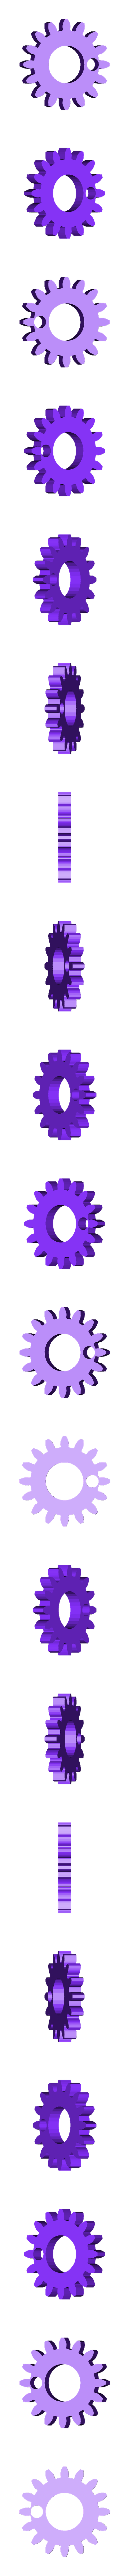 Small_Gear_FINAL.stl Download free STL file Gear Driven Adjustable TUSH • 3D printing model, christinewhybrow